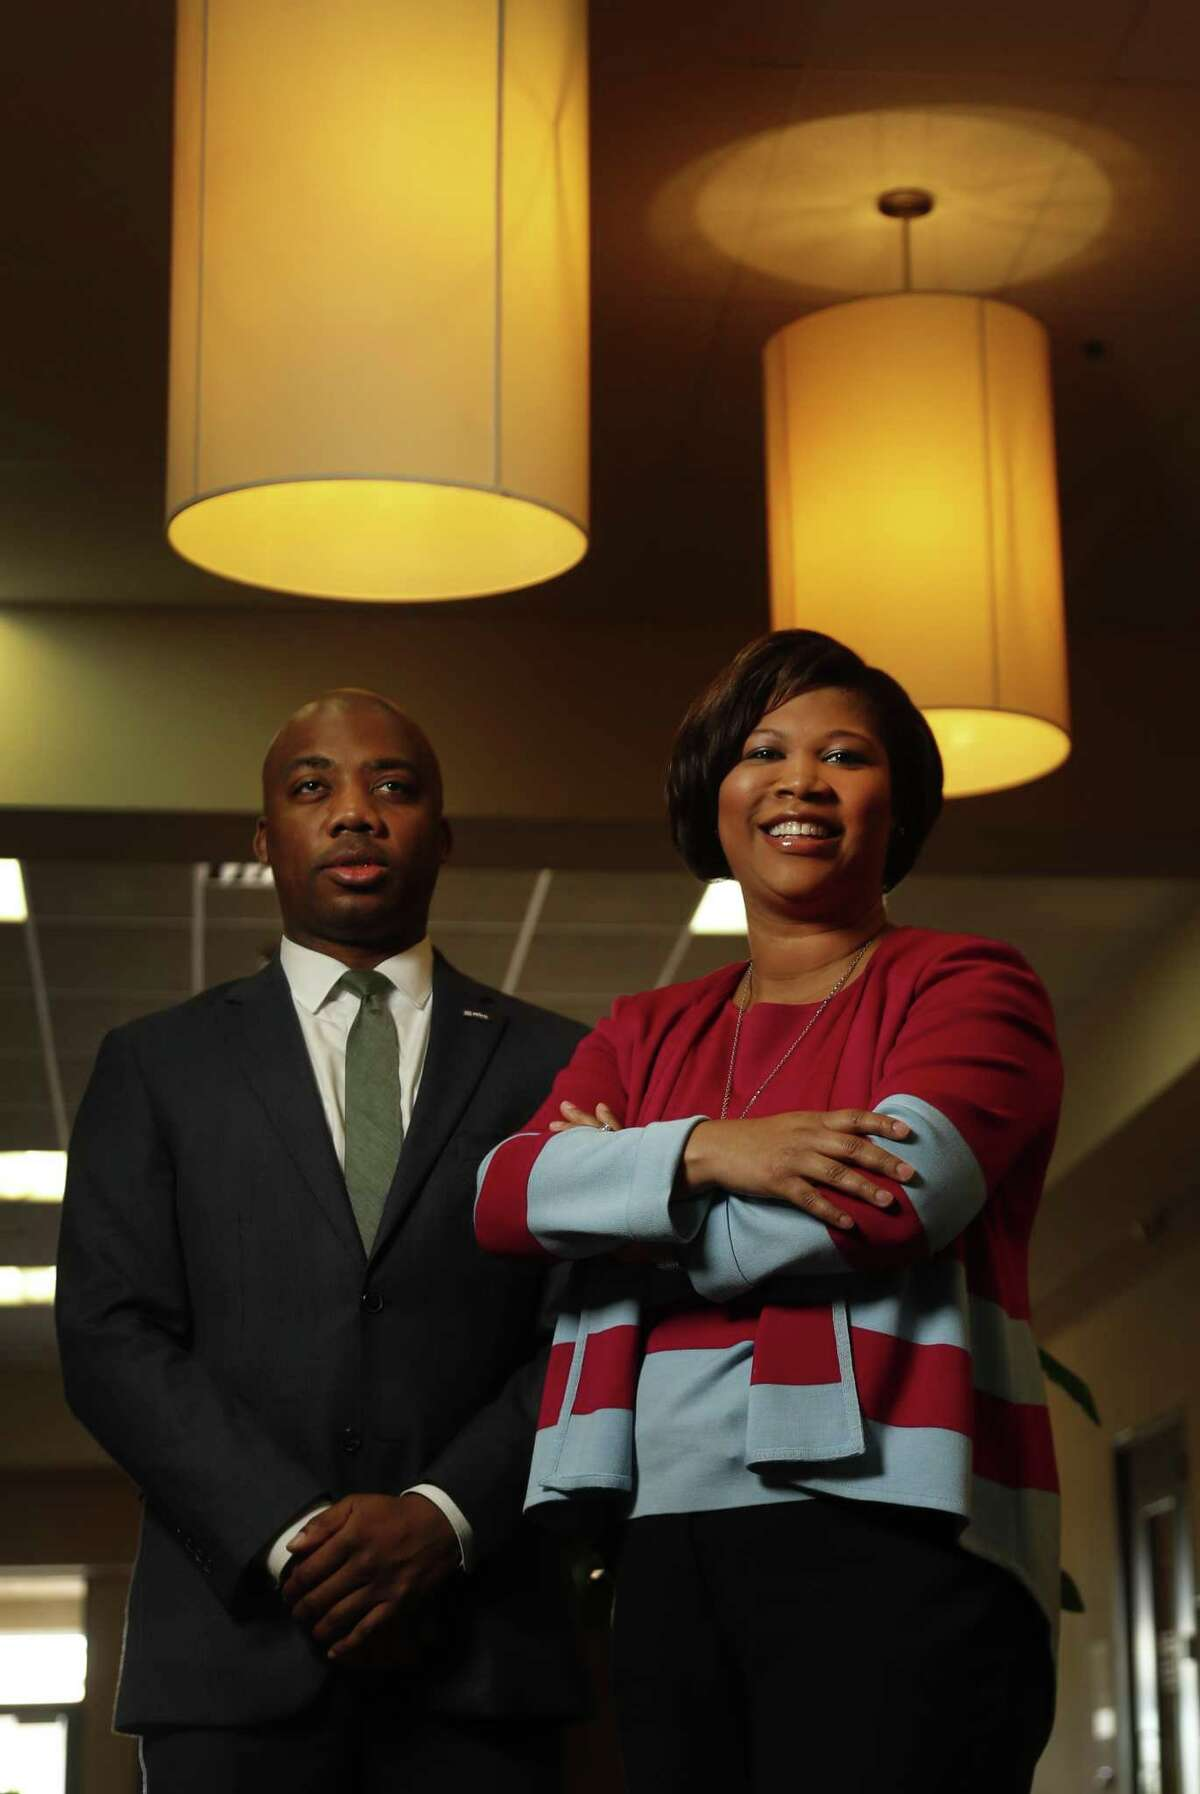 Courtney Johnson-Rose, Chairwoman of the Greater Houston Black Chamber of Commerce, and Errol Allen II, president of the National Black MBA Association Houston Chapter, photographed at The Power Center, Tuesday, March 20, 2018, in Houston. Their respective organizations will be hosting the eigth annual Houston Black Leadership Forum. ( Karen Warren / Houston Chronicle )